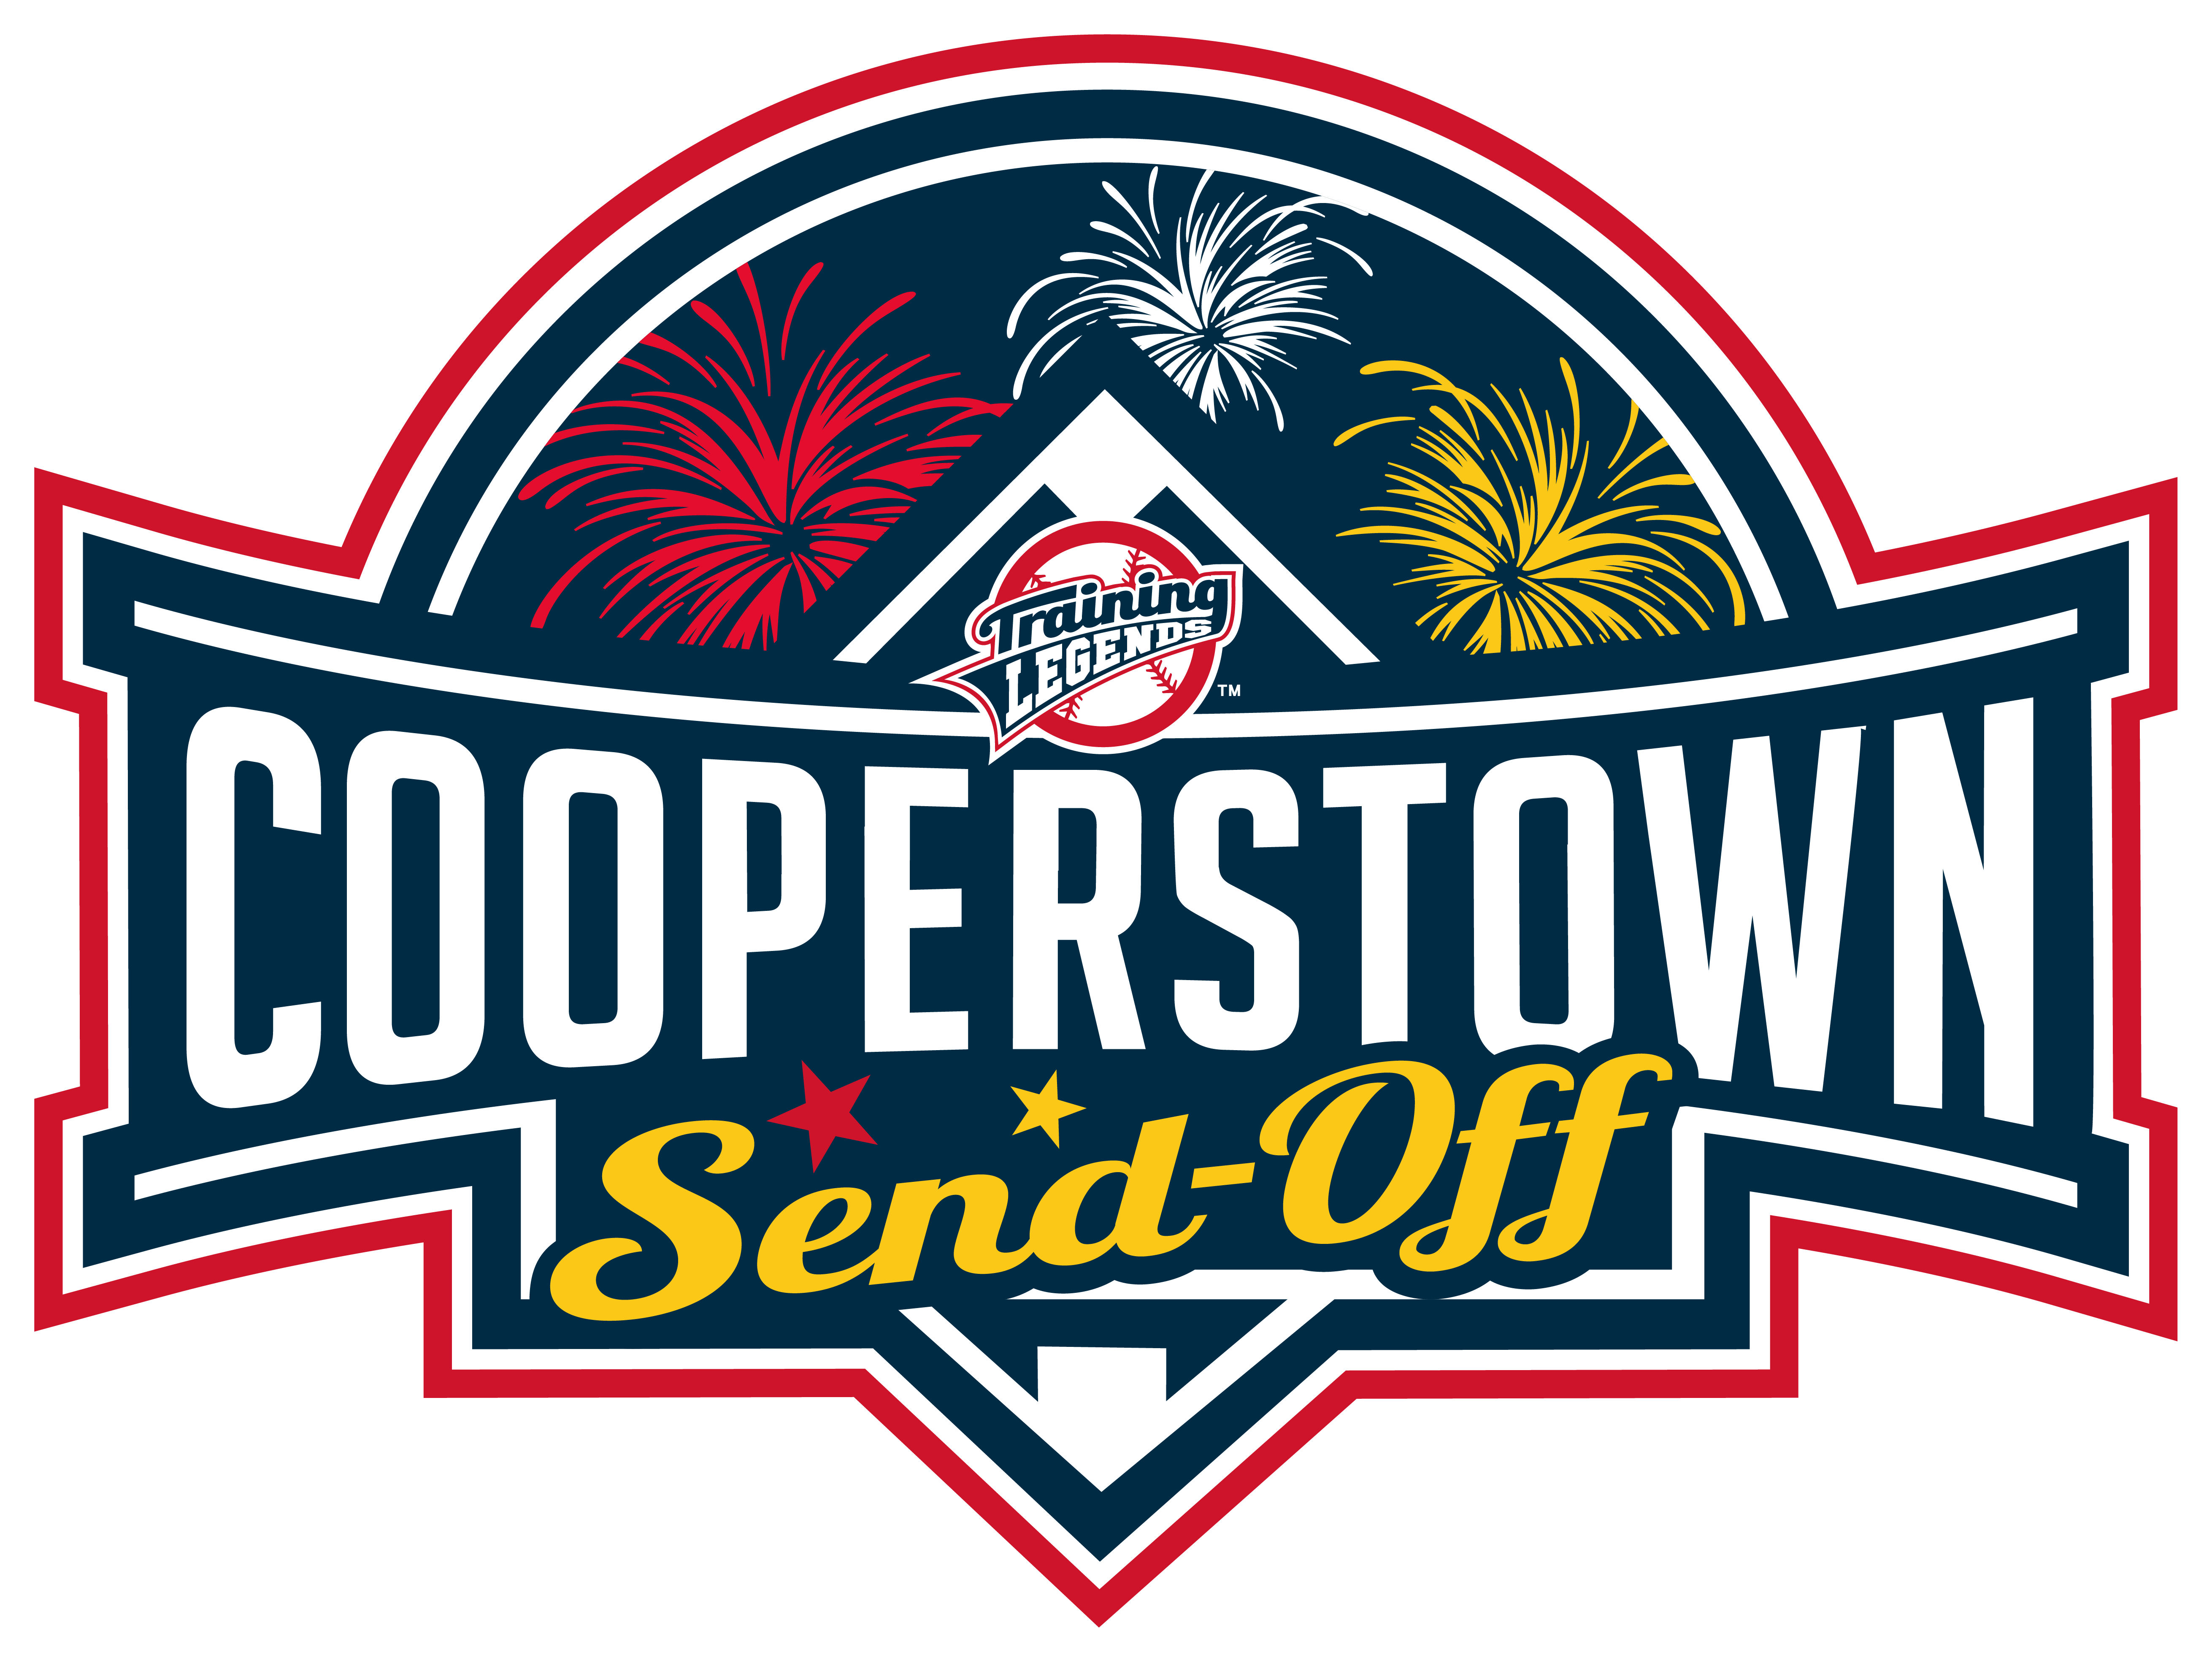 Cooperstown Send-Off: (12U) (JUMBO Rings) COOPERSTOWN SERIES